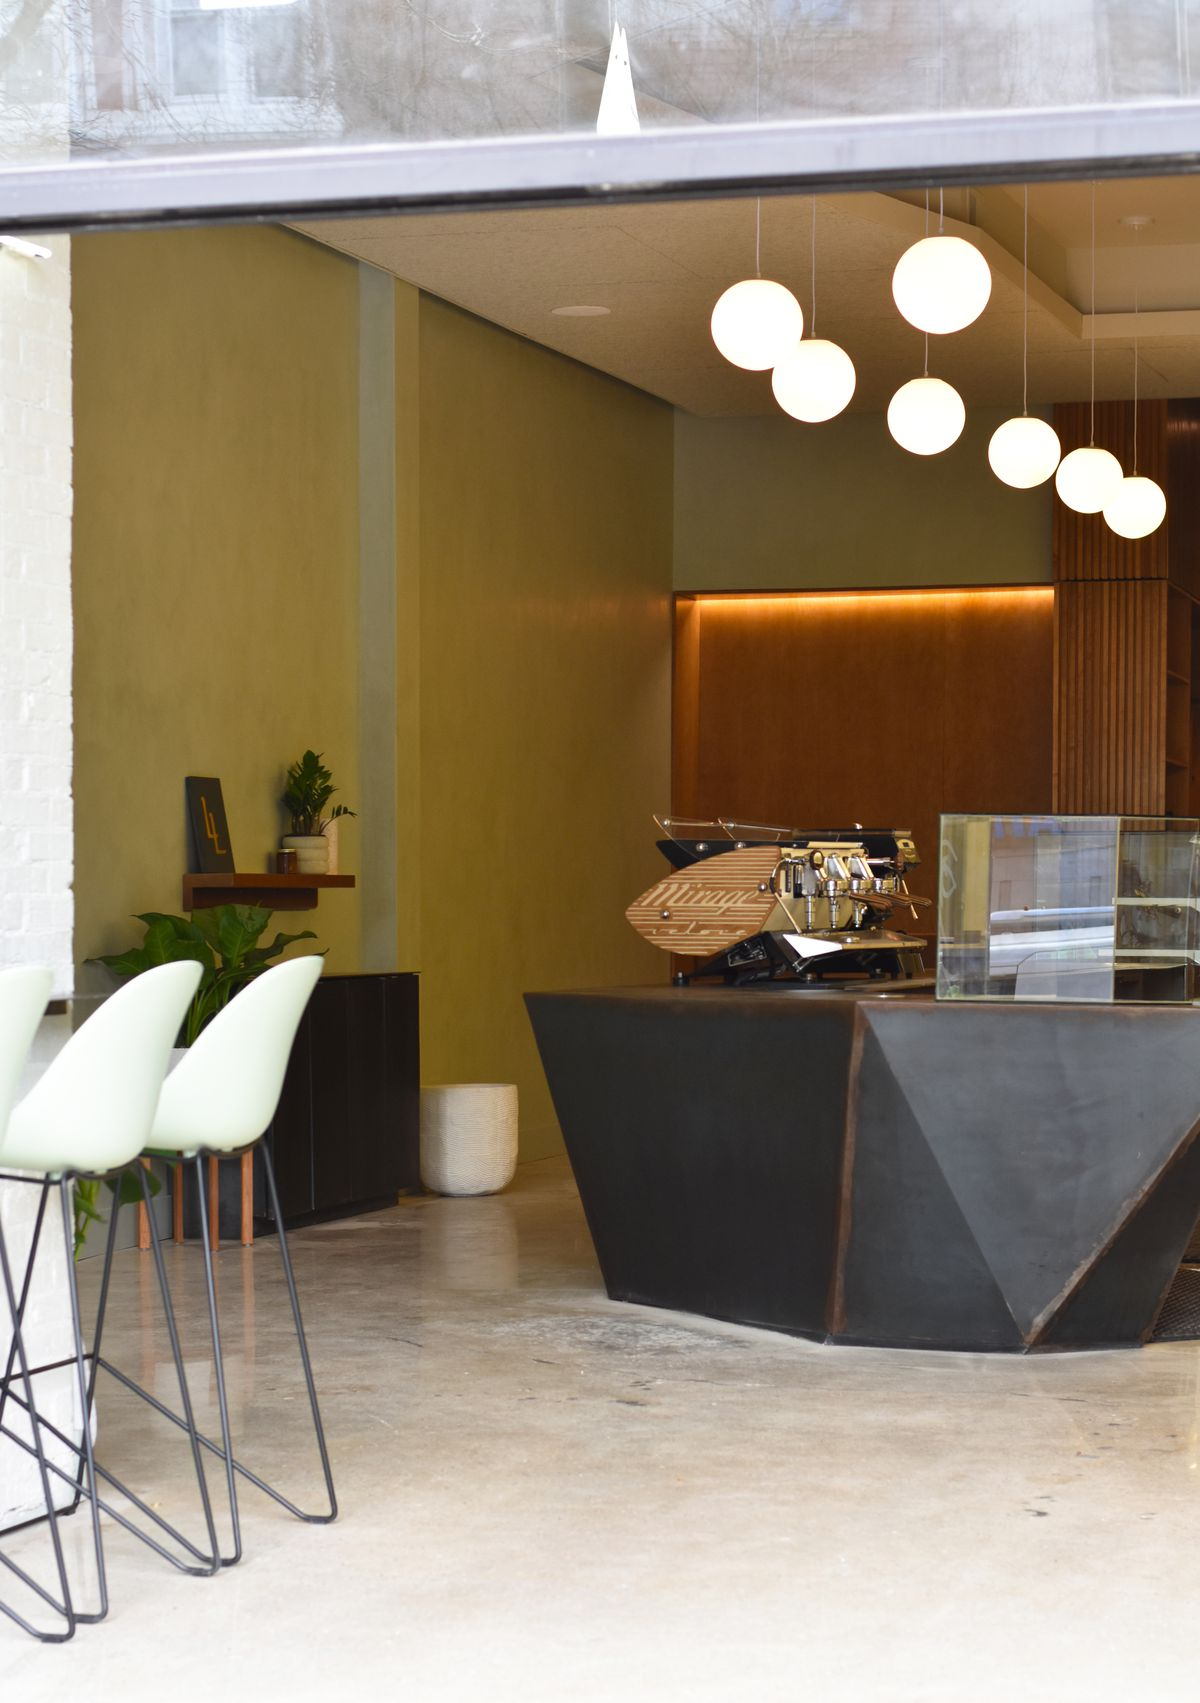 A geometric barista station with hanging pendant lights above it